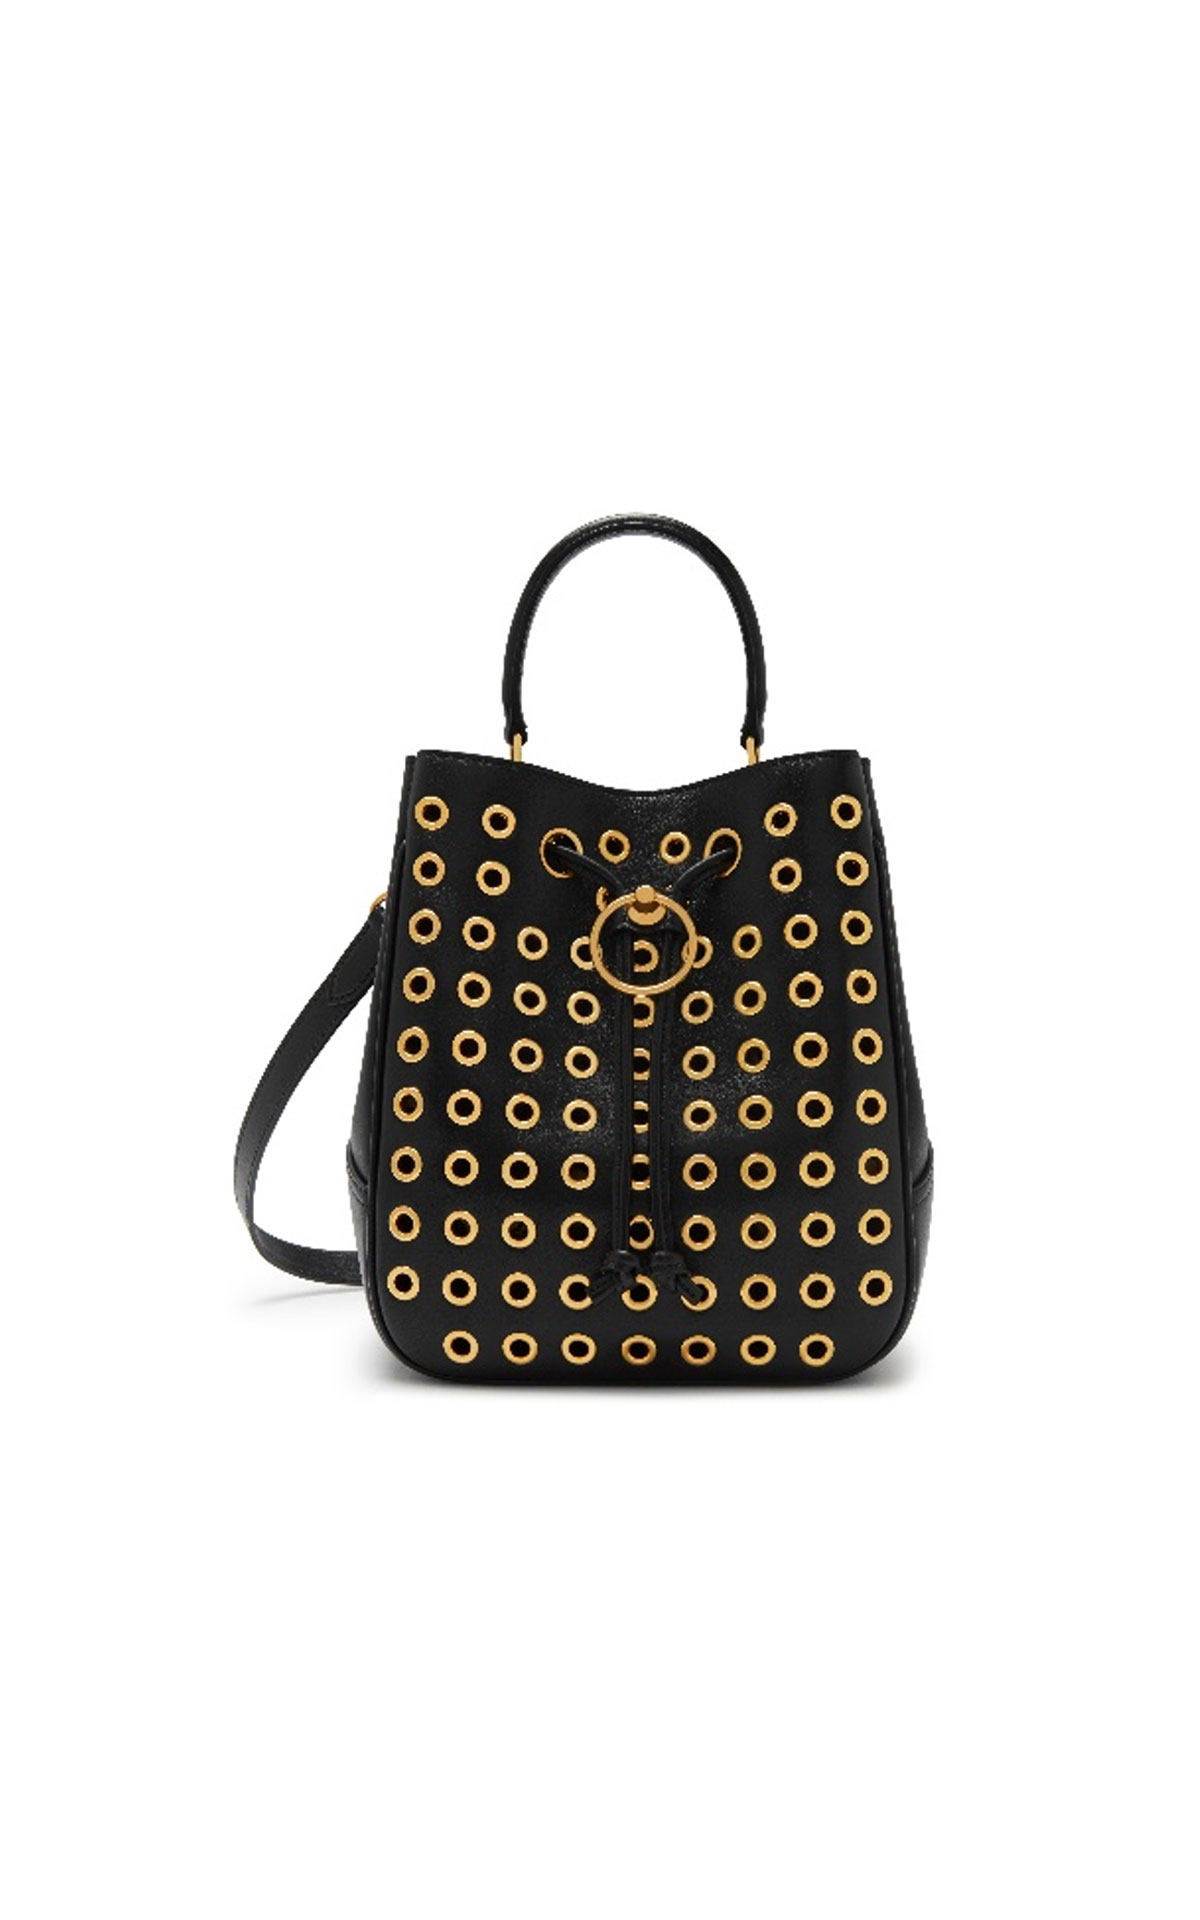 Mulberry Hampstead eyelet shiny calf from Bicester Village